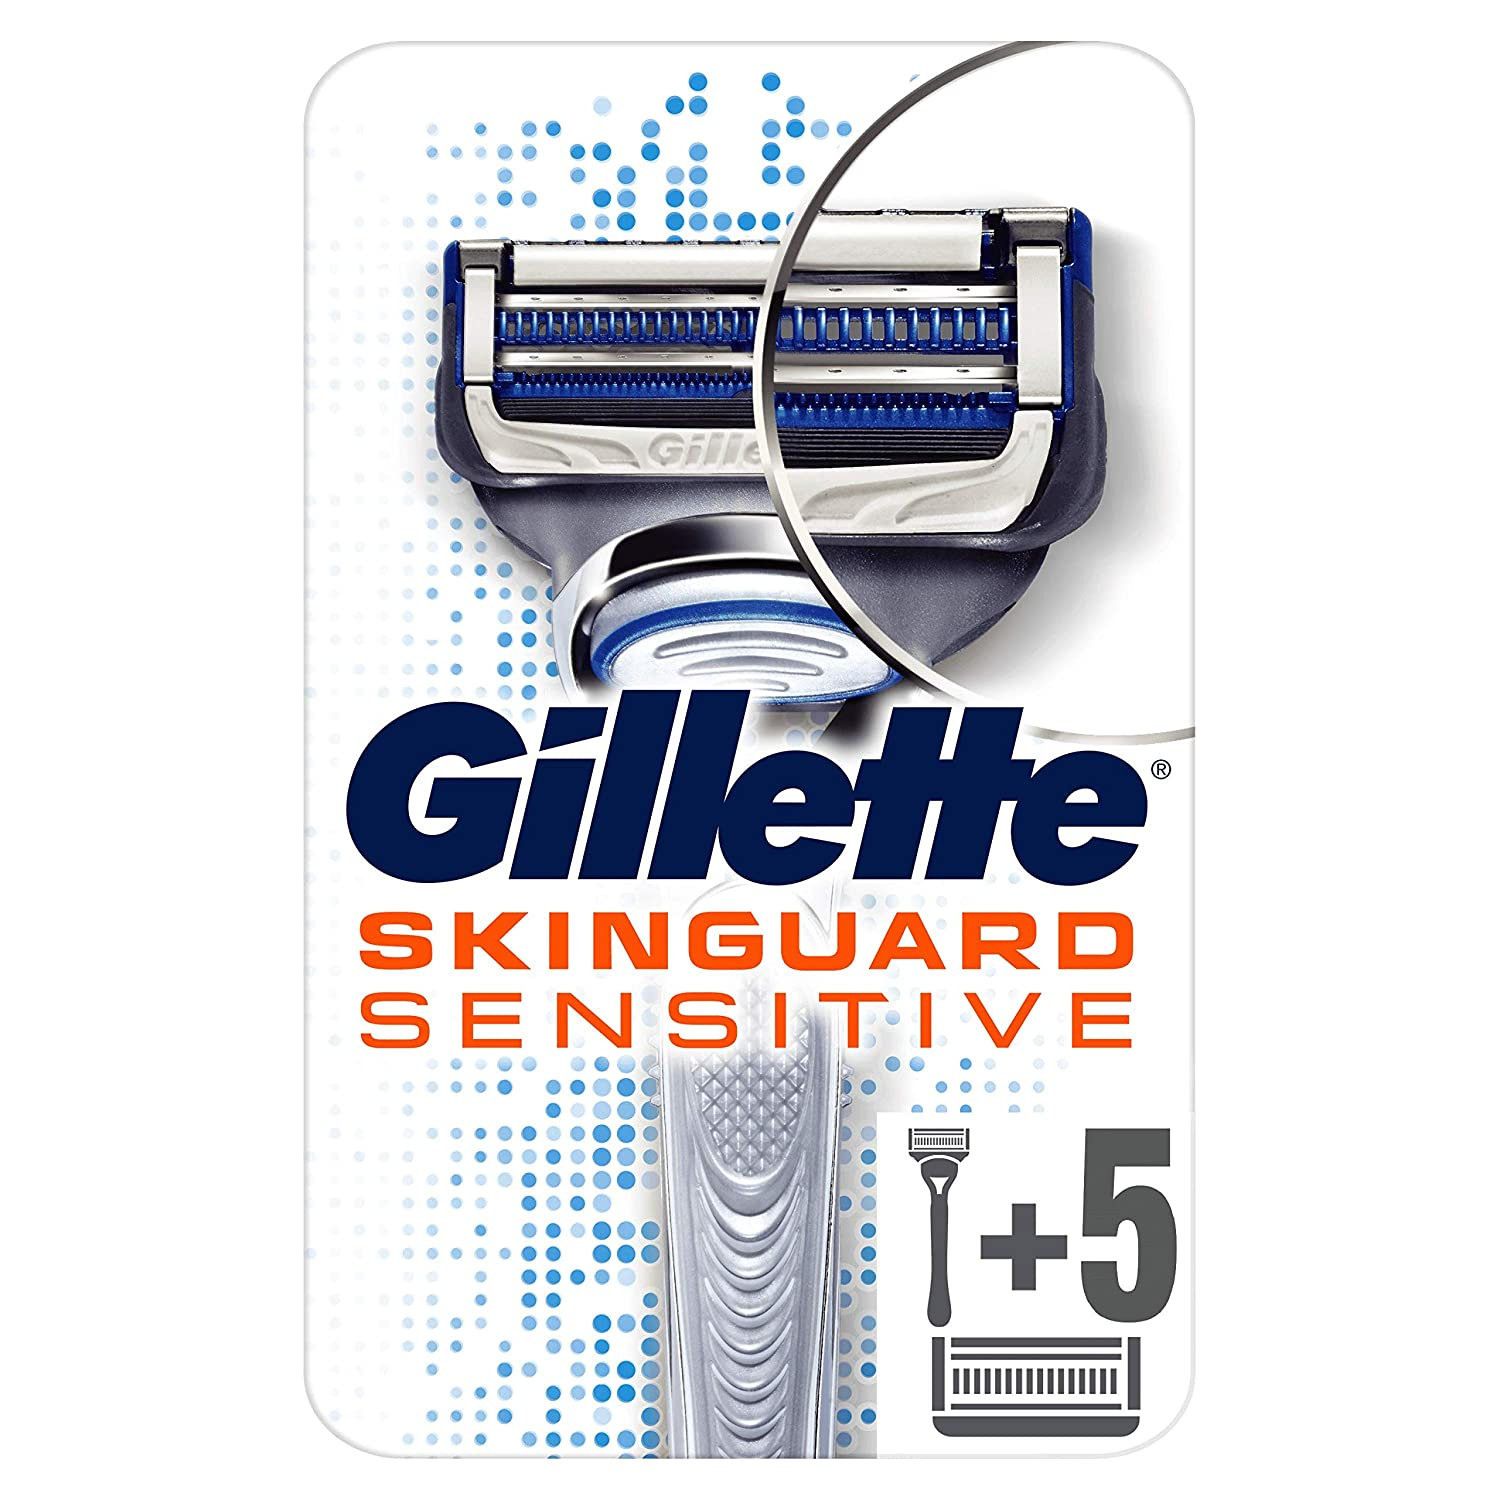 Gillette SkinGuard Sensitive Razor for Men with Precision Trimmer + 6 Refill Blades (Suitable for Mailbox)